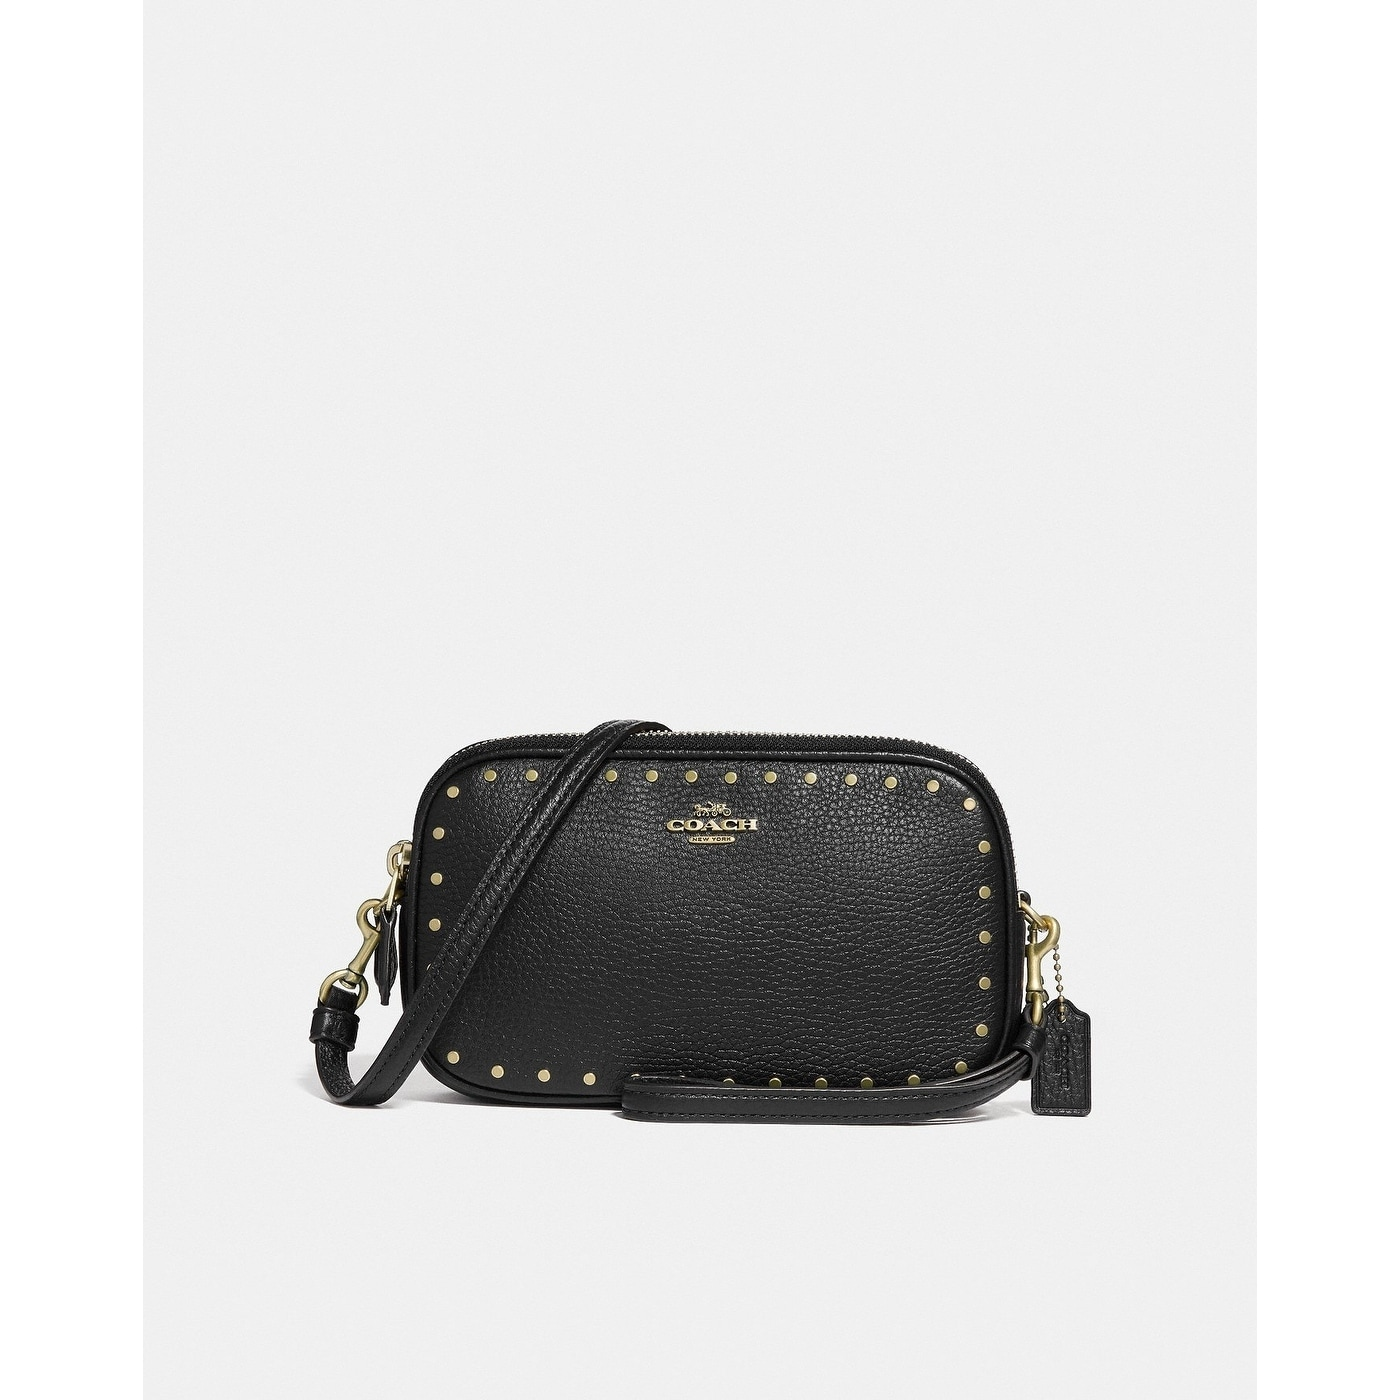 6b372a562864 Shop Coach Sadie Crossbody Clutch With Rivets - On Sale - Free Shipping  Today - Overstock - 25625972